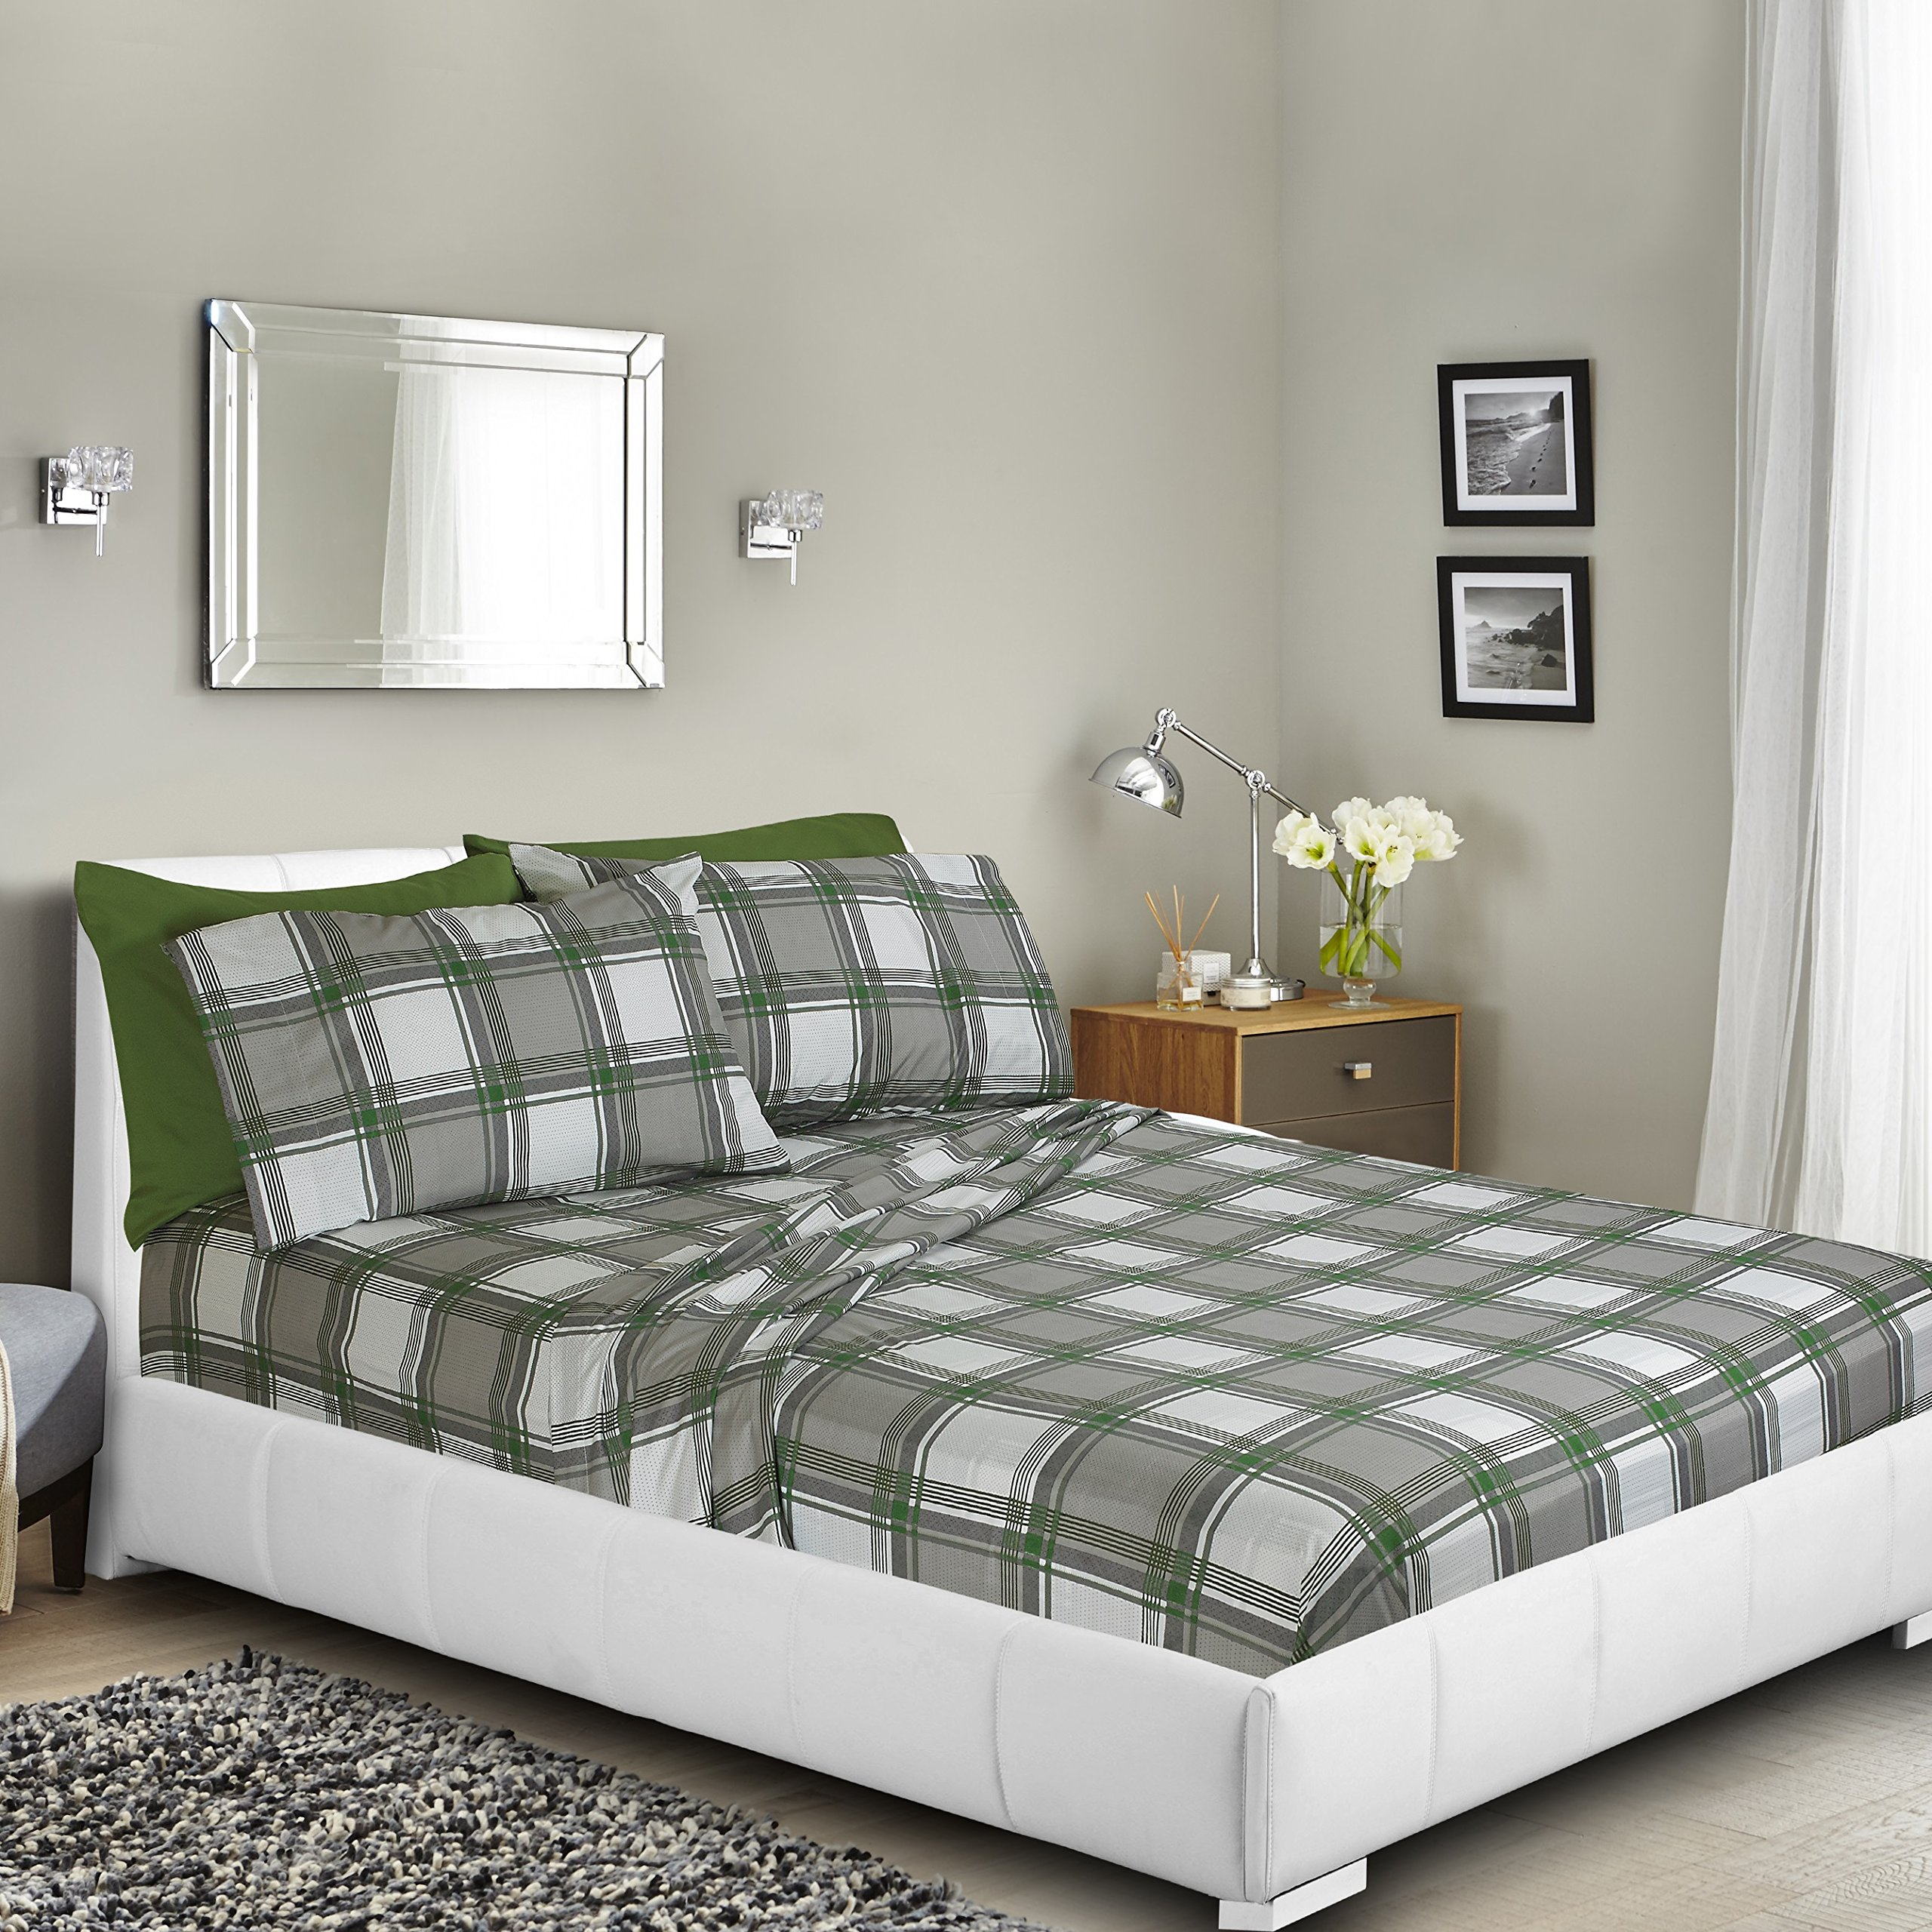 Clara Clark Premier 1800 Collection Deluxe Microfiber 3-Line Bed Sheet Set, Green/Grey Plaid, Full (Double) Size